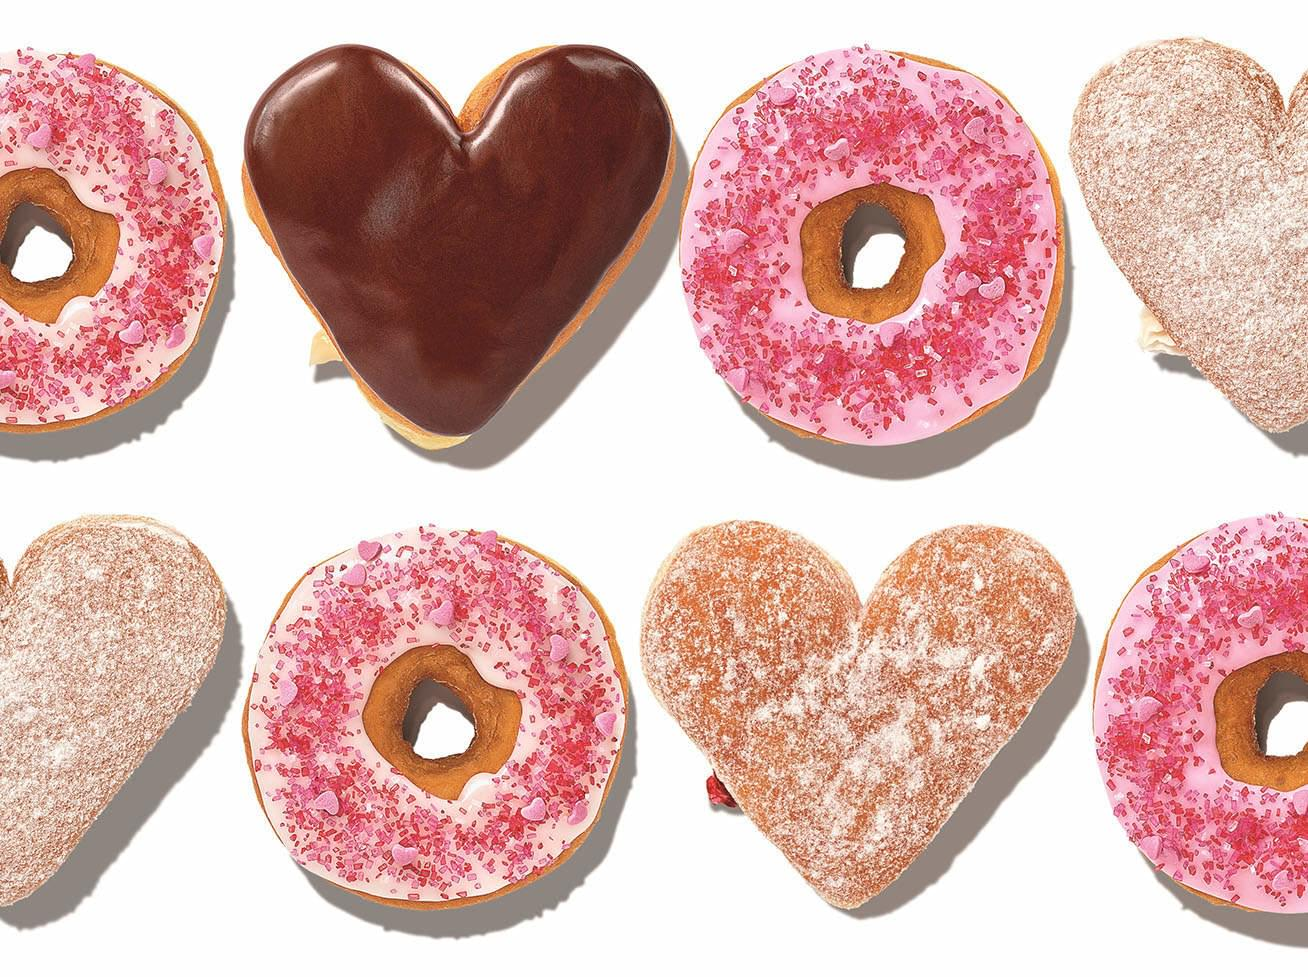 Dunkin' Celebrates Valentine's with Heart-Shaped Donuts and Weddings